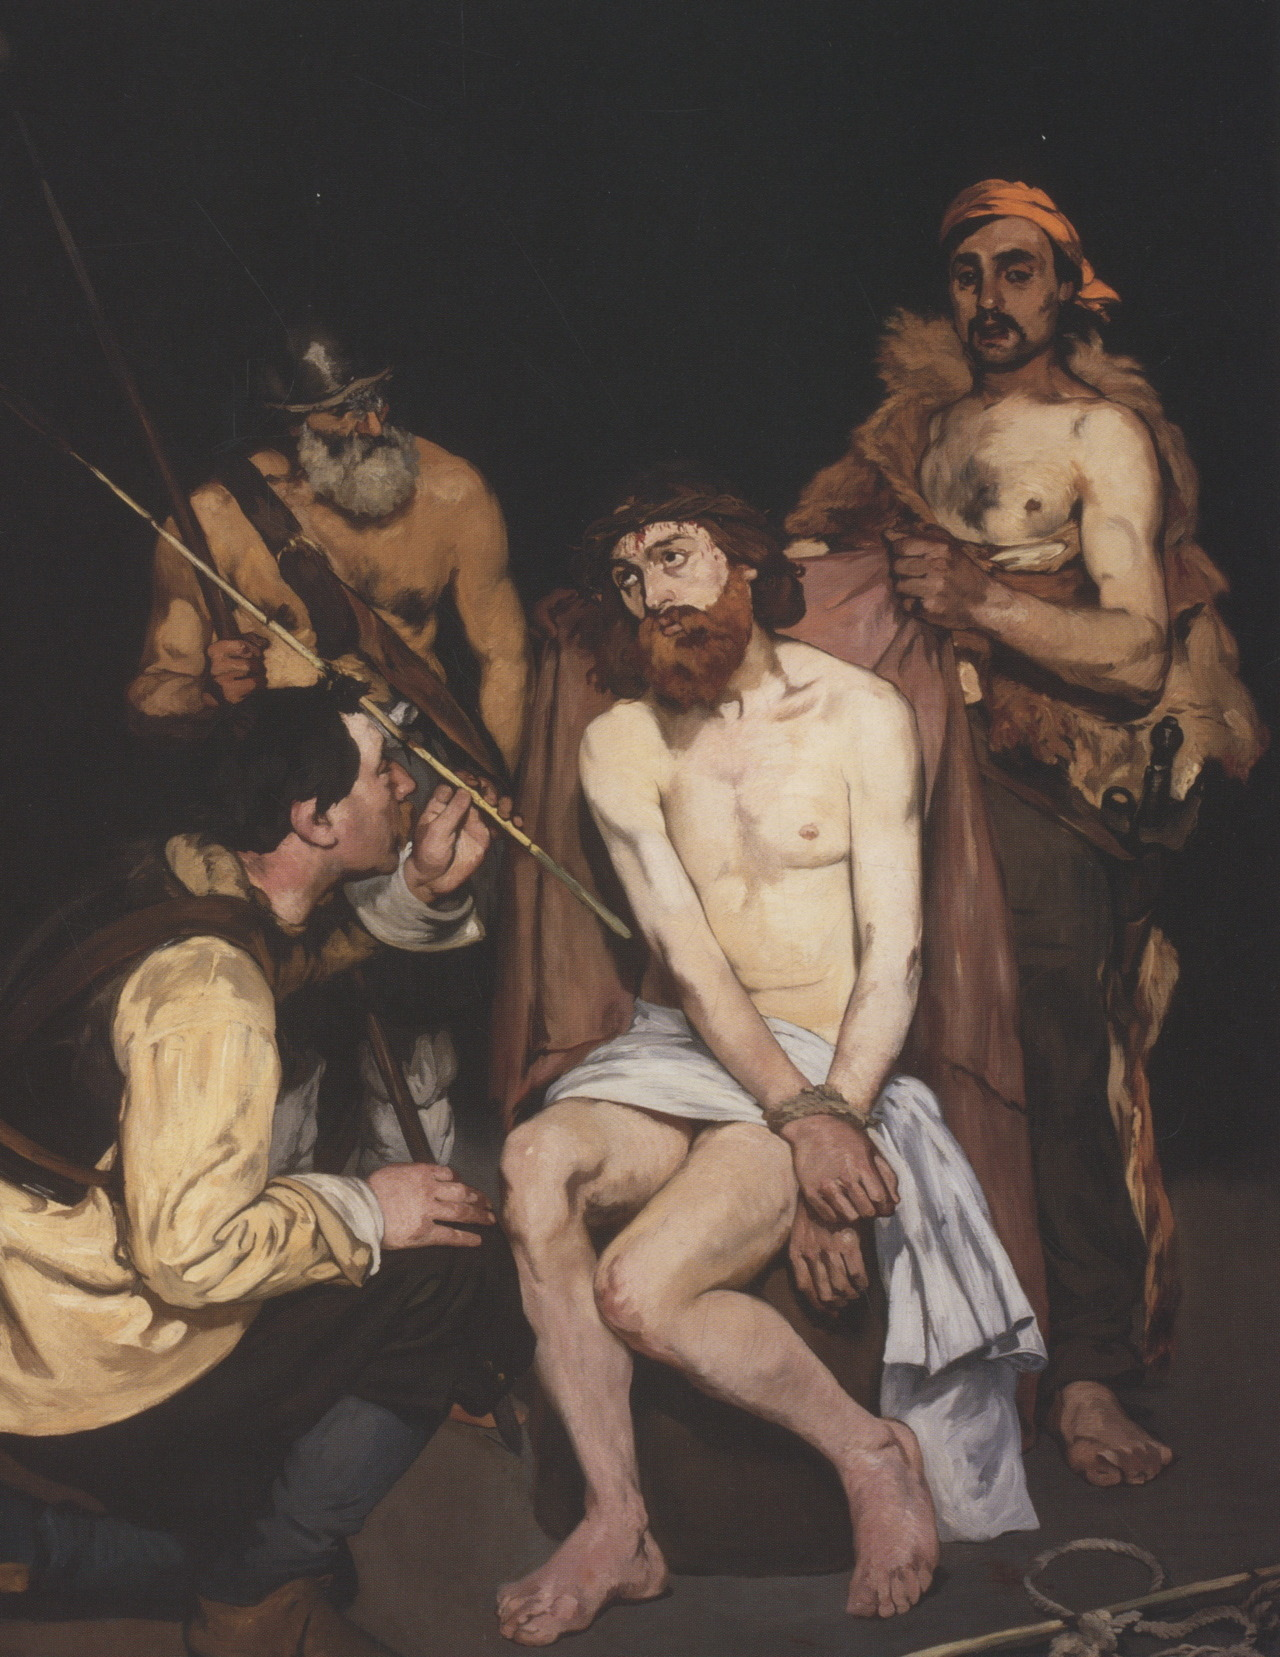 Jesus Mocked by Roman Soldiers, 1864-65. Édouard Manet Oil on canvas, 75 x 58 1/2in. The Art Institute of Chicago, Chicago, Ill.